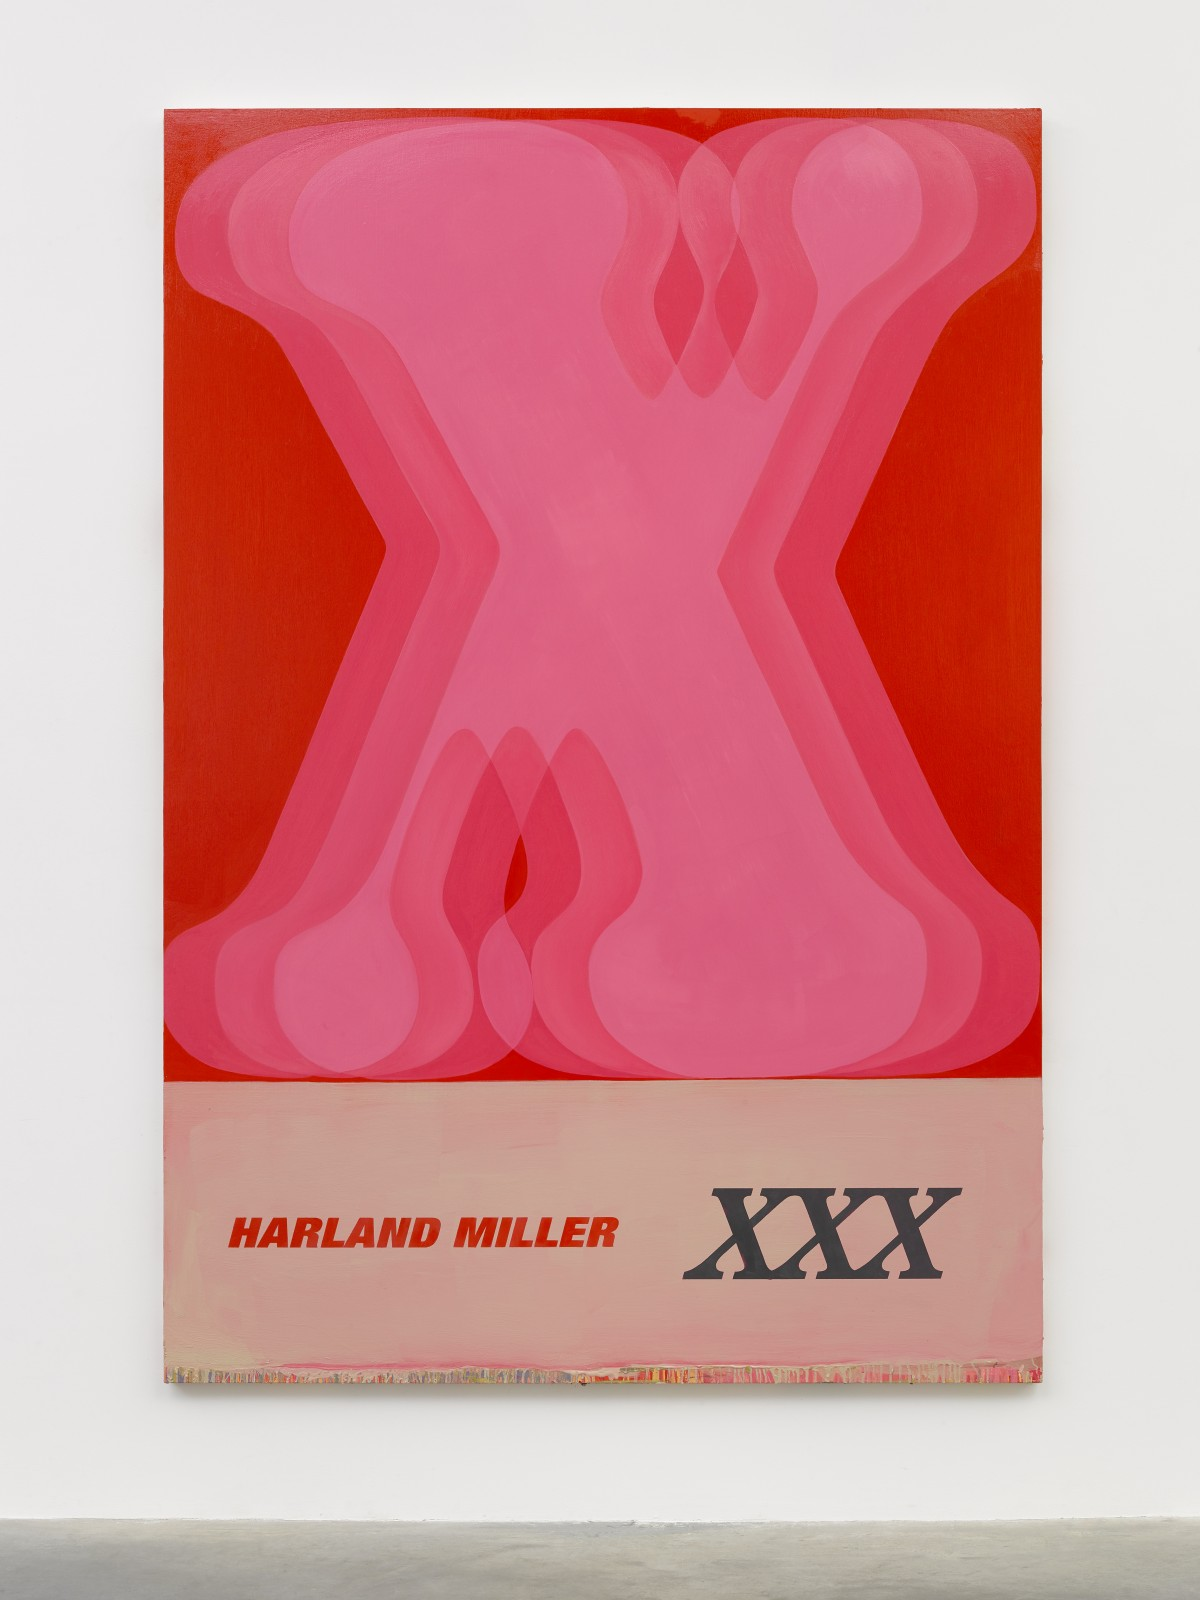 XXX, 2019 © Harland Miller. Photo © White Cube (Theo Christelis) Courtesy White Cube